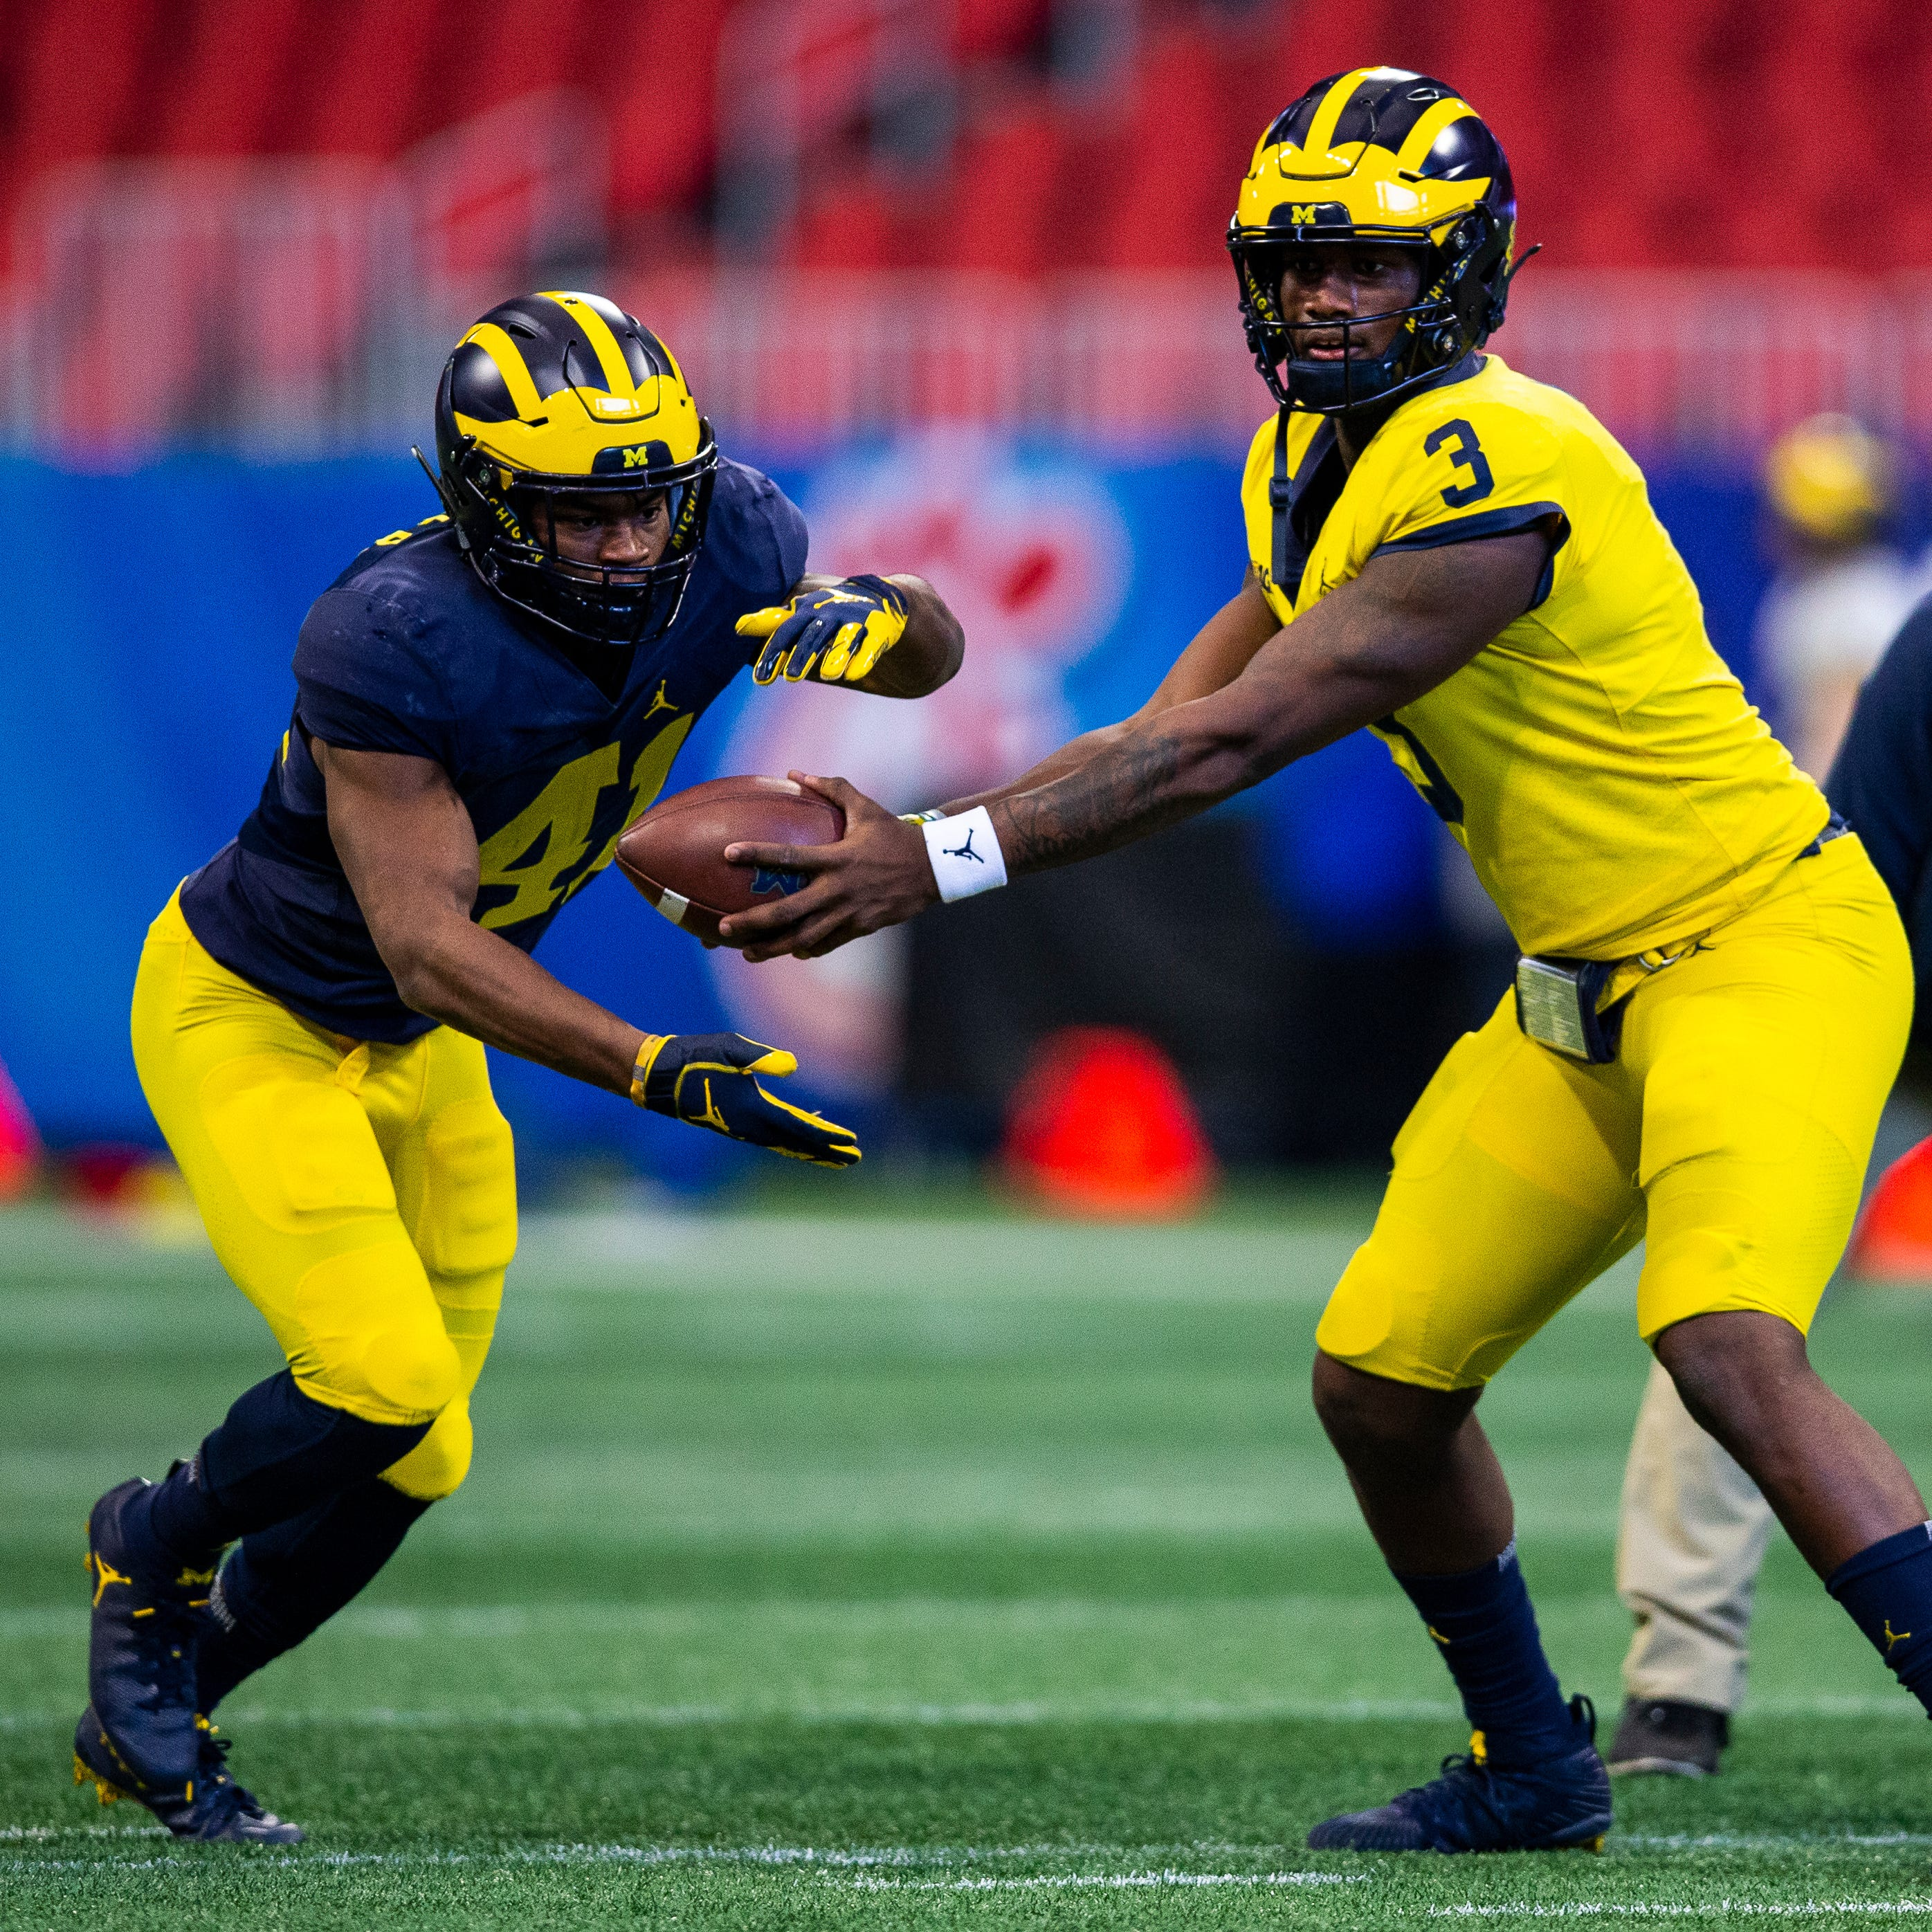 Michigan football spring game 2019: Here's how to follow live updates